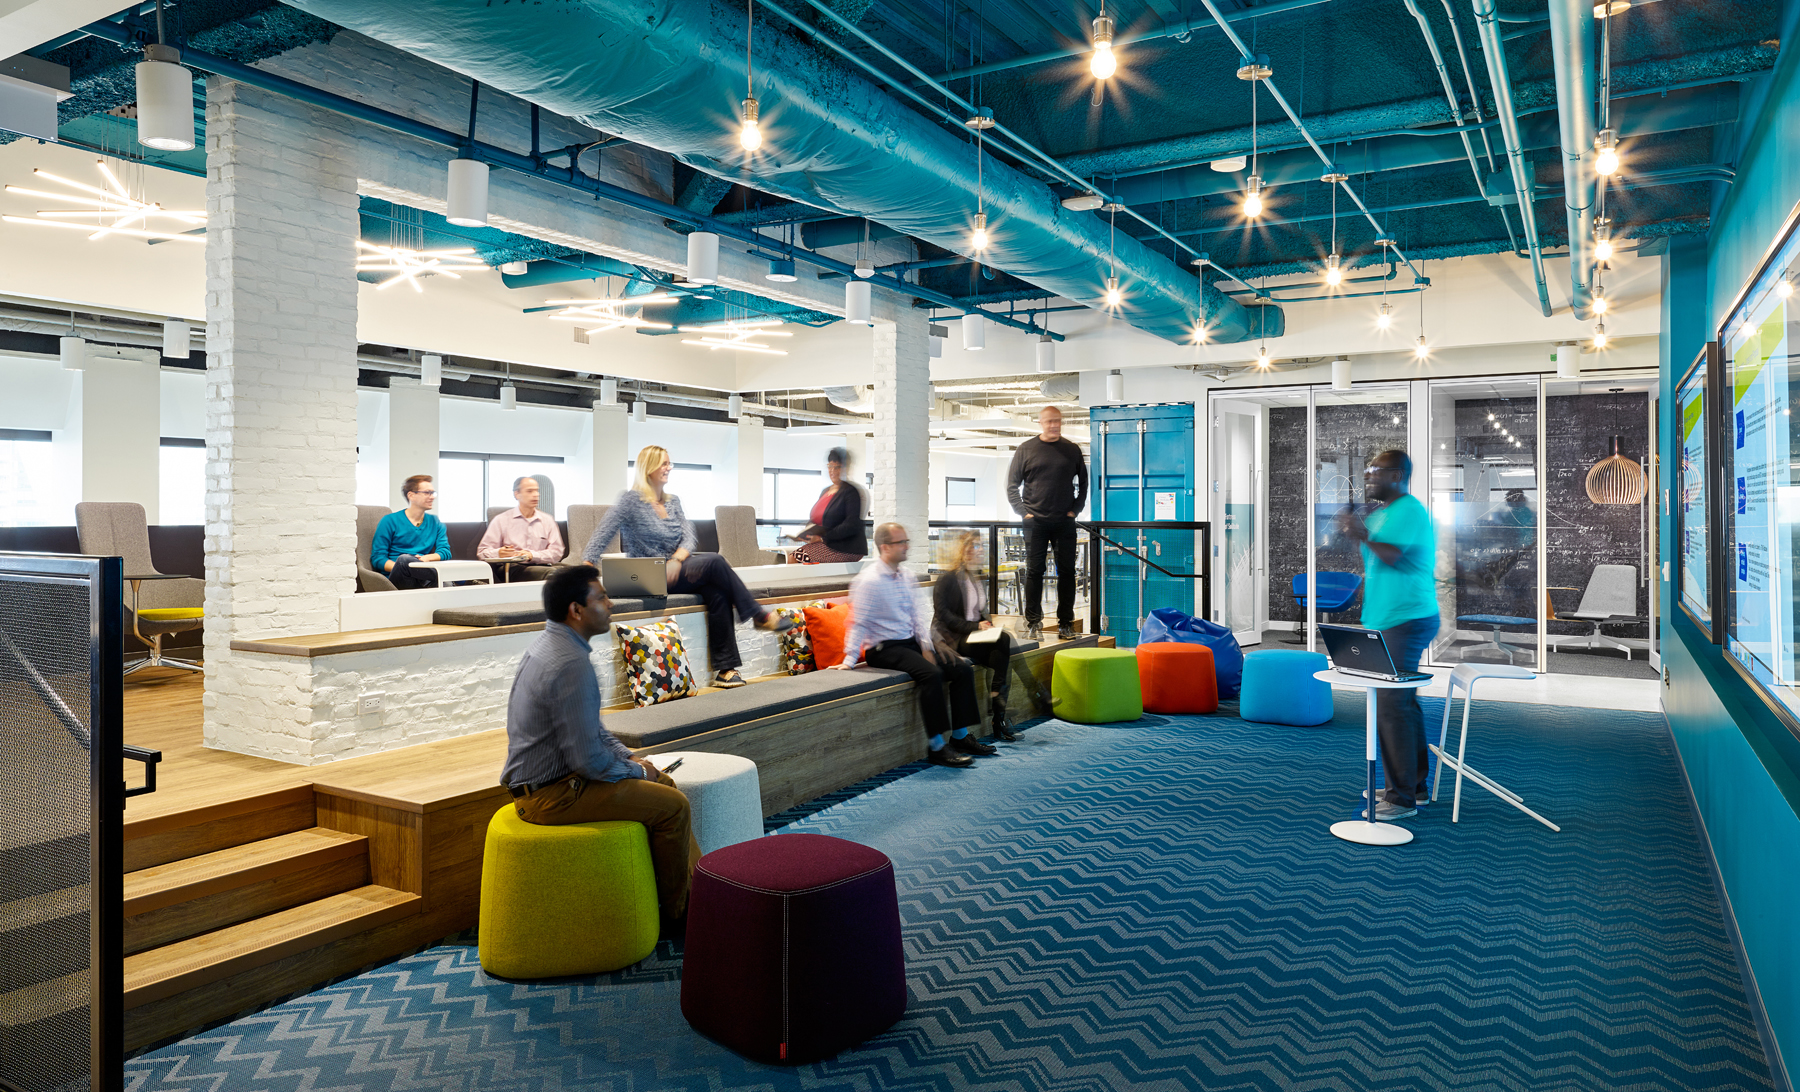 AVIVA Digital Garage meeting area with blue carpeting, colourful poufs, and open ceiling